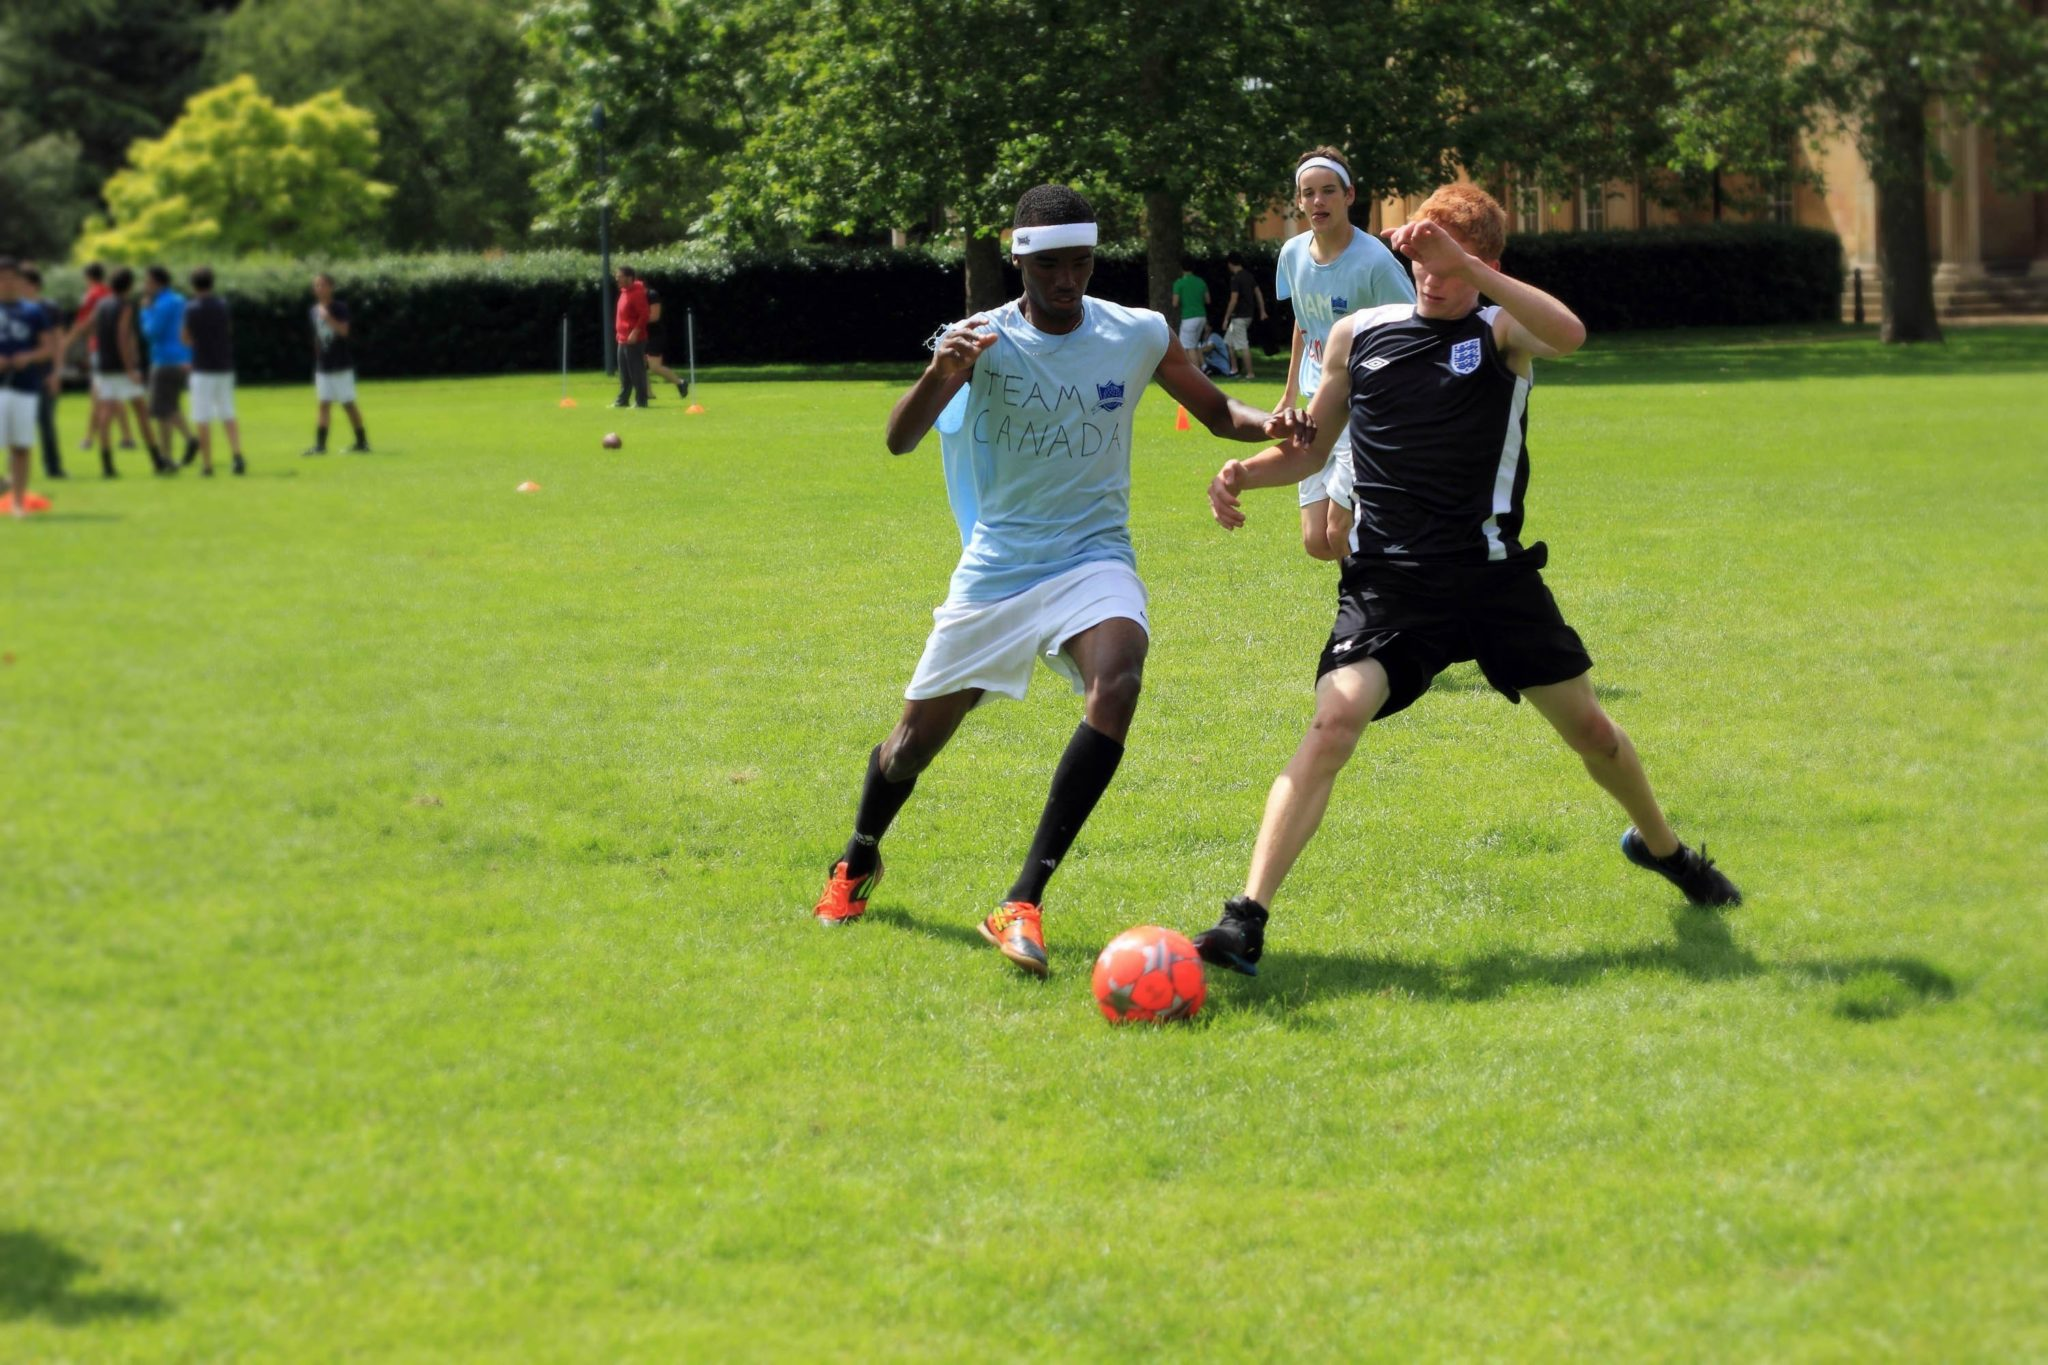 Two students play football on a green field. One student has red hair and is wearing their own sports kit, and the other student is wearing a customised 'Reach Cambridge' T-shirt. They are both running for the ball.